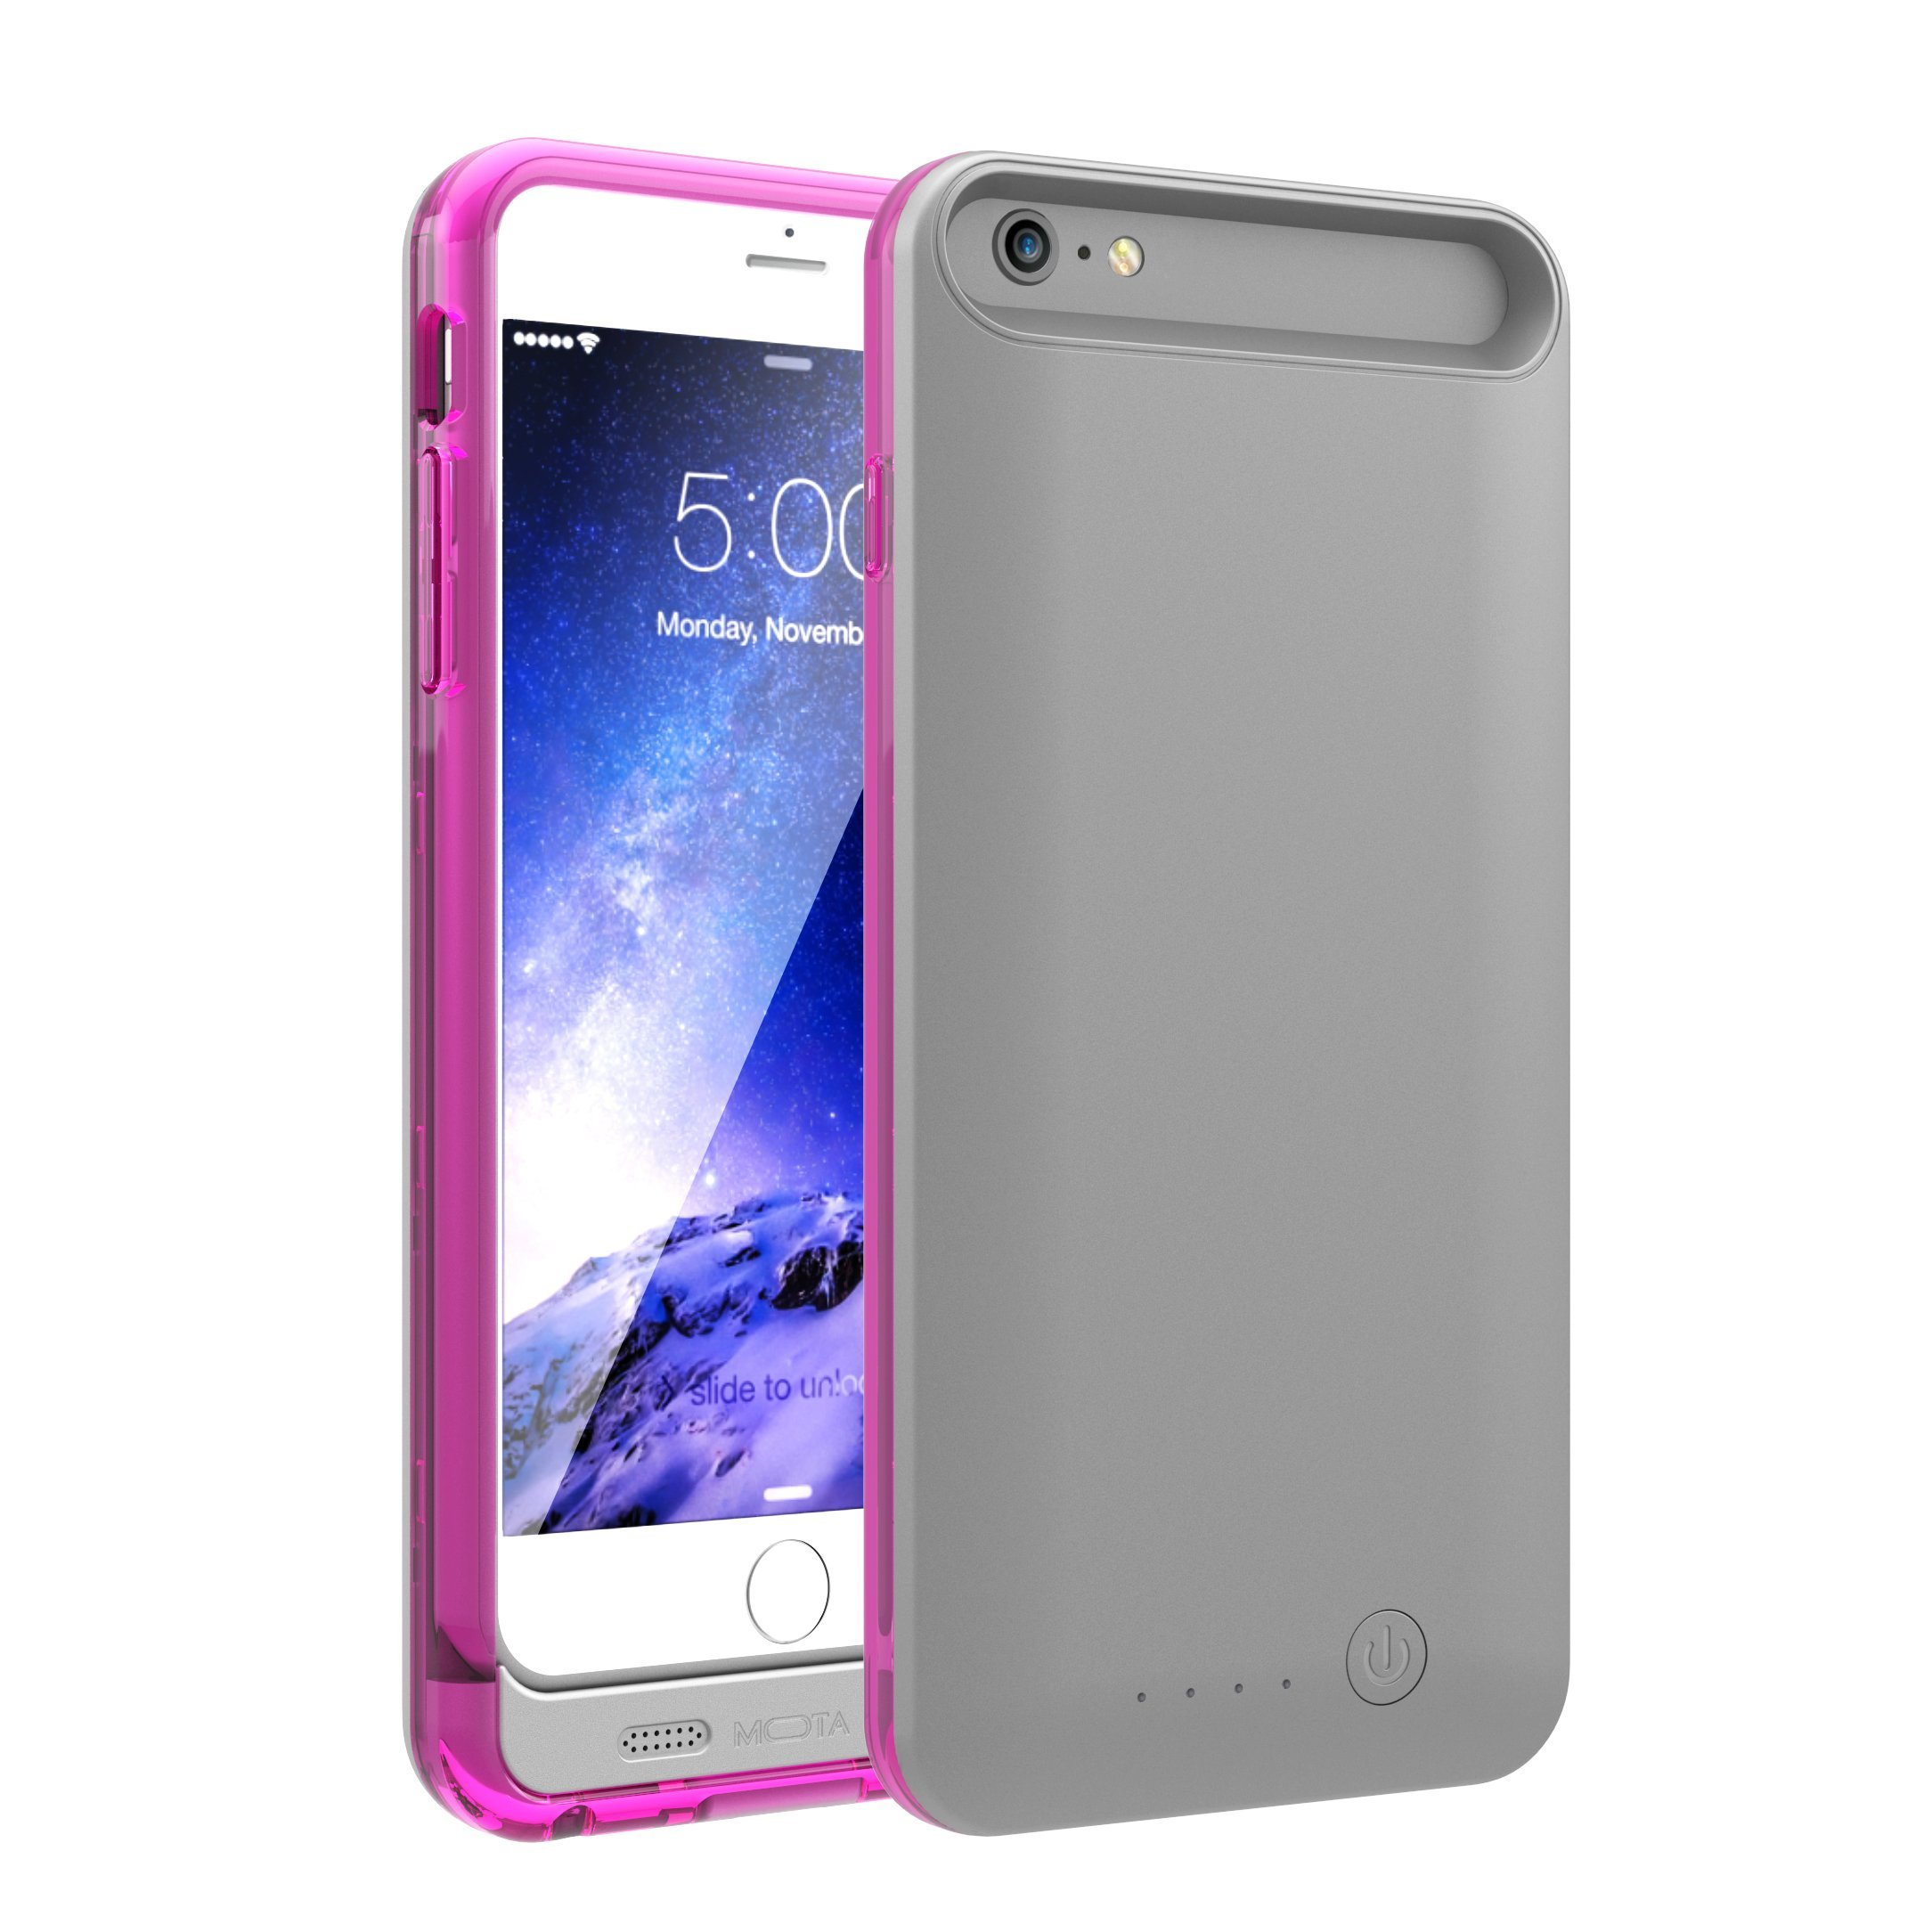 TAMO iPhone 6/6s Extended Battery Case, TAMO 2400 mAh dual-purposed Ultra-Slim Protective Extended Battery Case - Pink - Battery - Retail Packaging - Pink